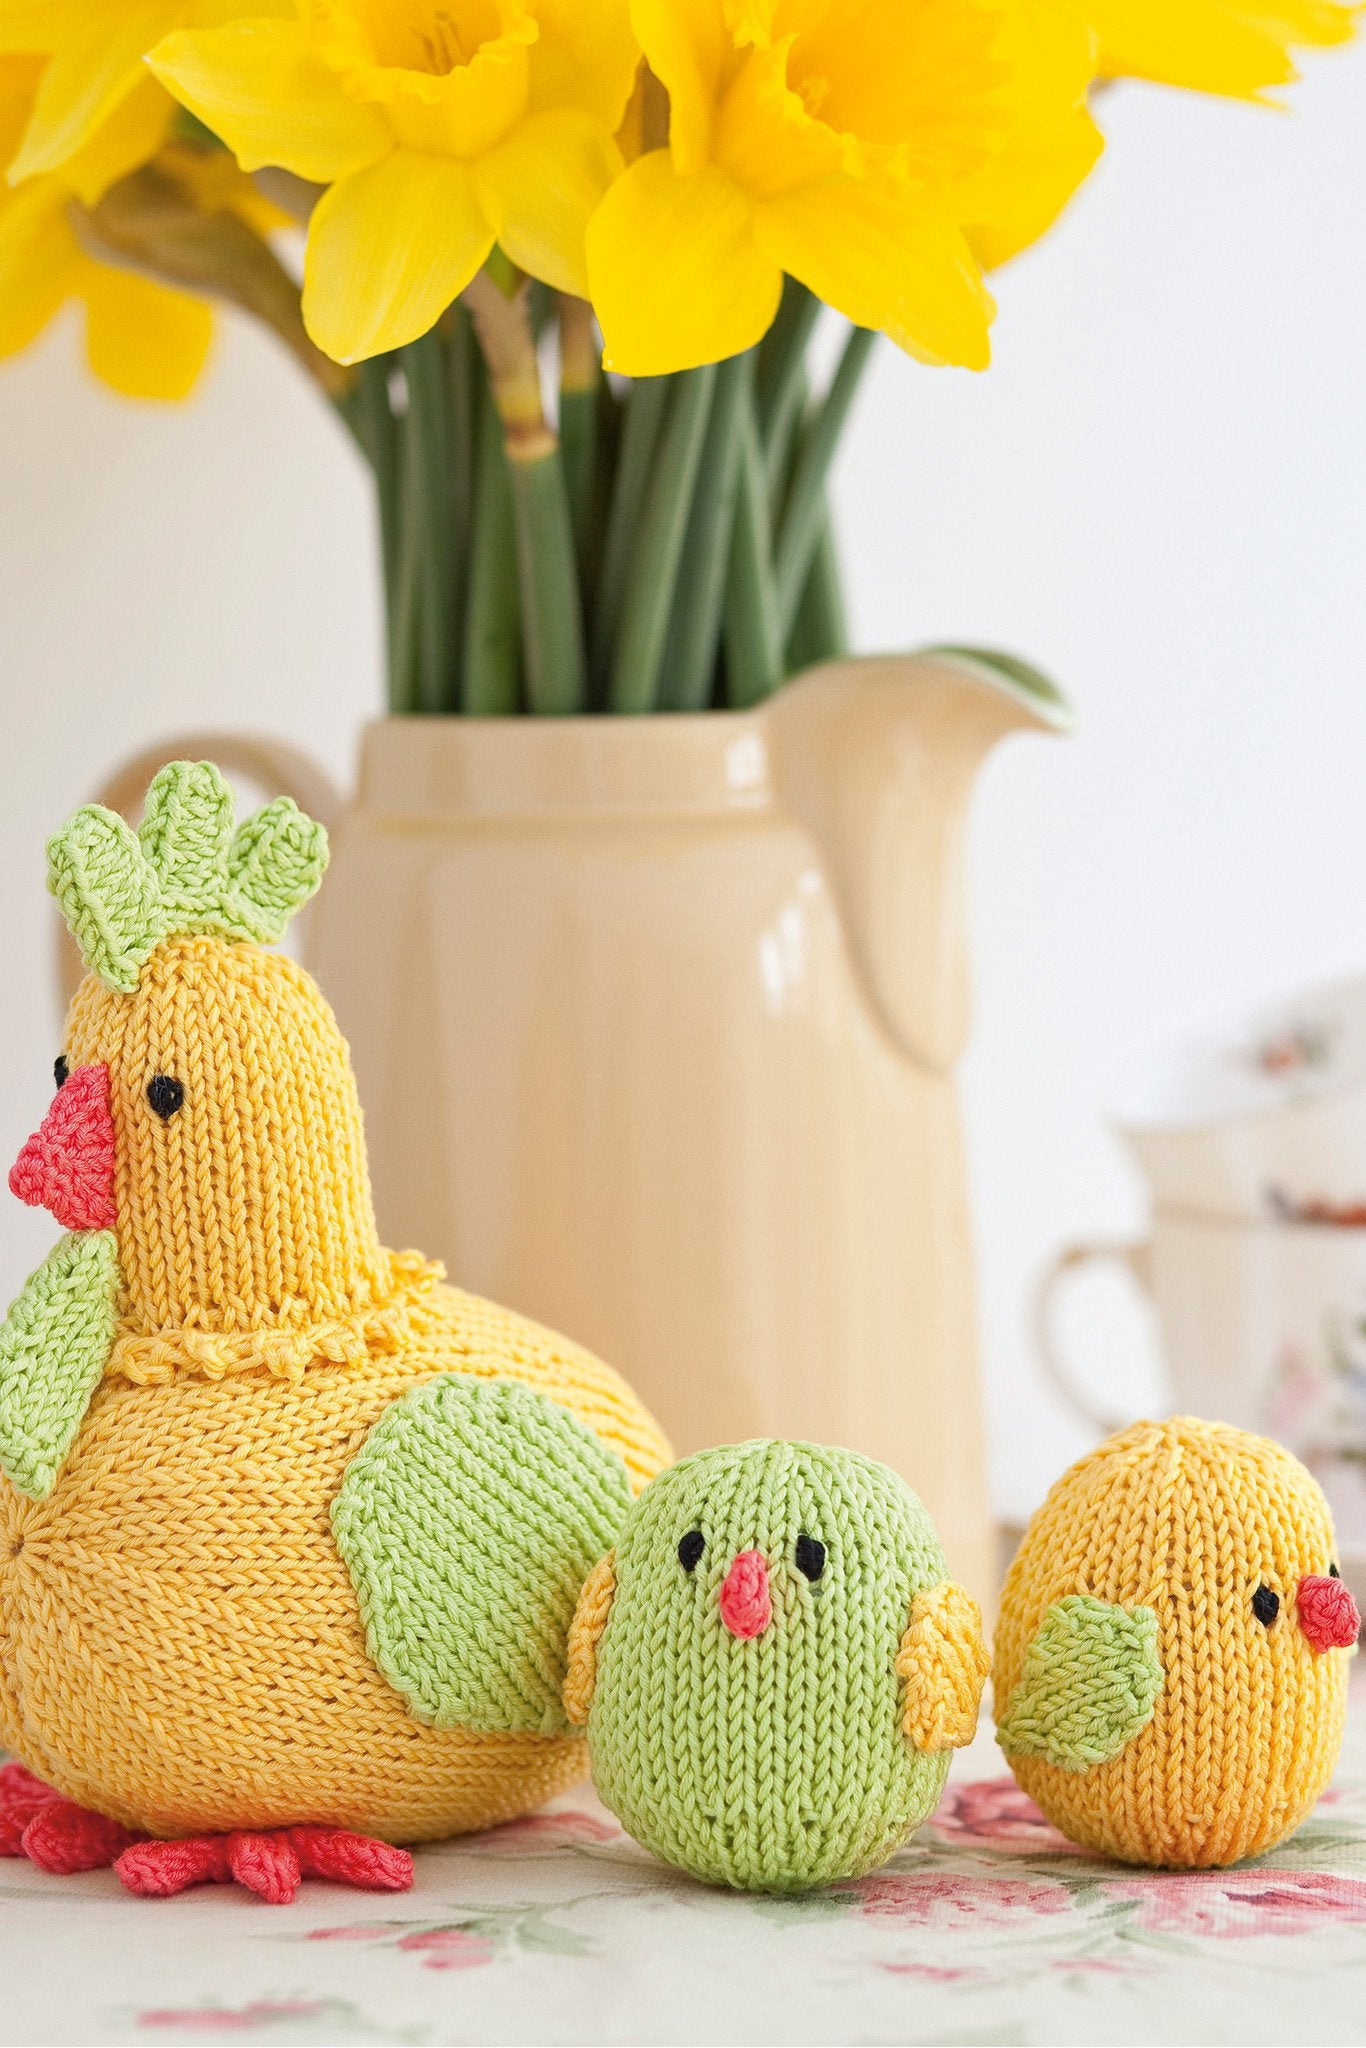 Hen And Chicks Knitting Pattern – The Knitting Network